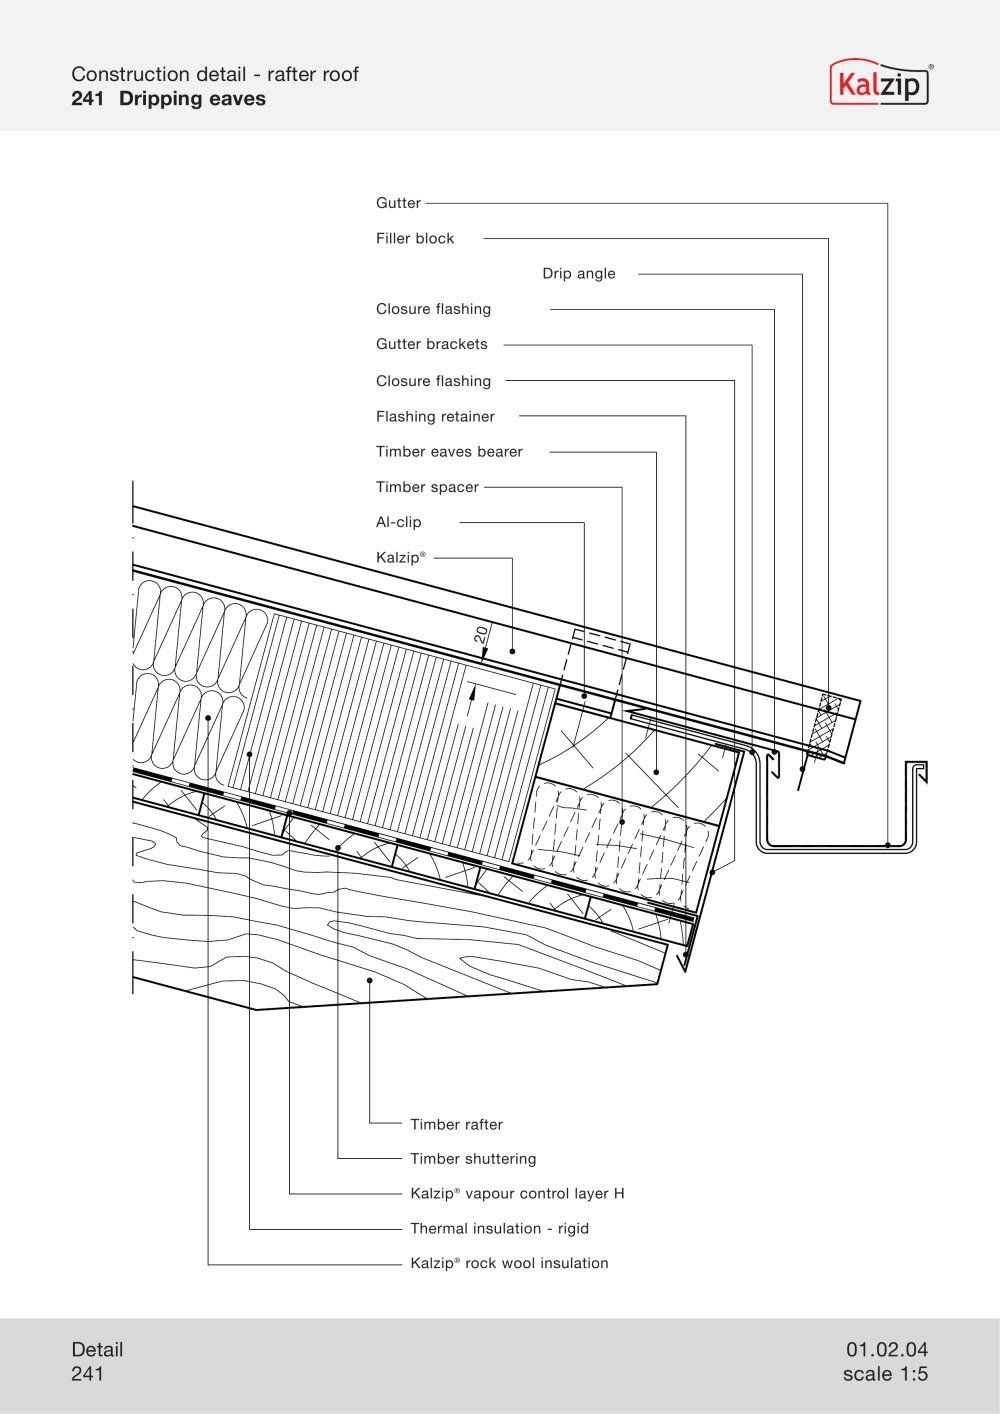 Kalzip construction details architecture building for Roof decking thickness